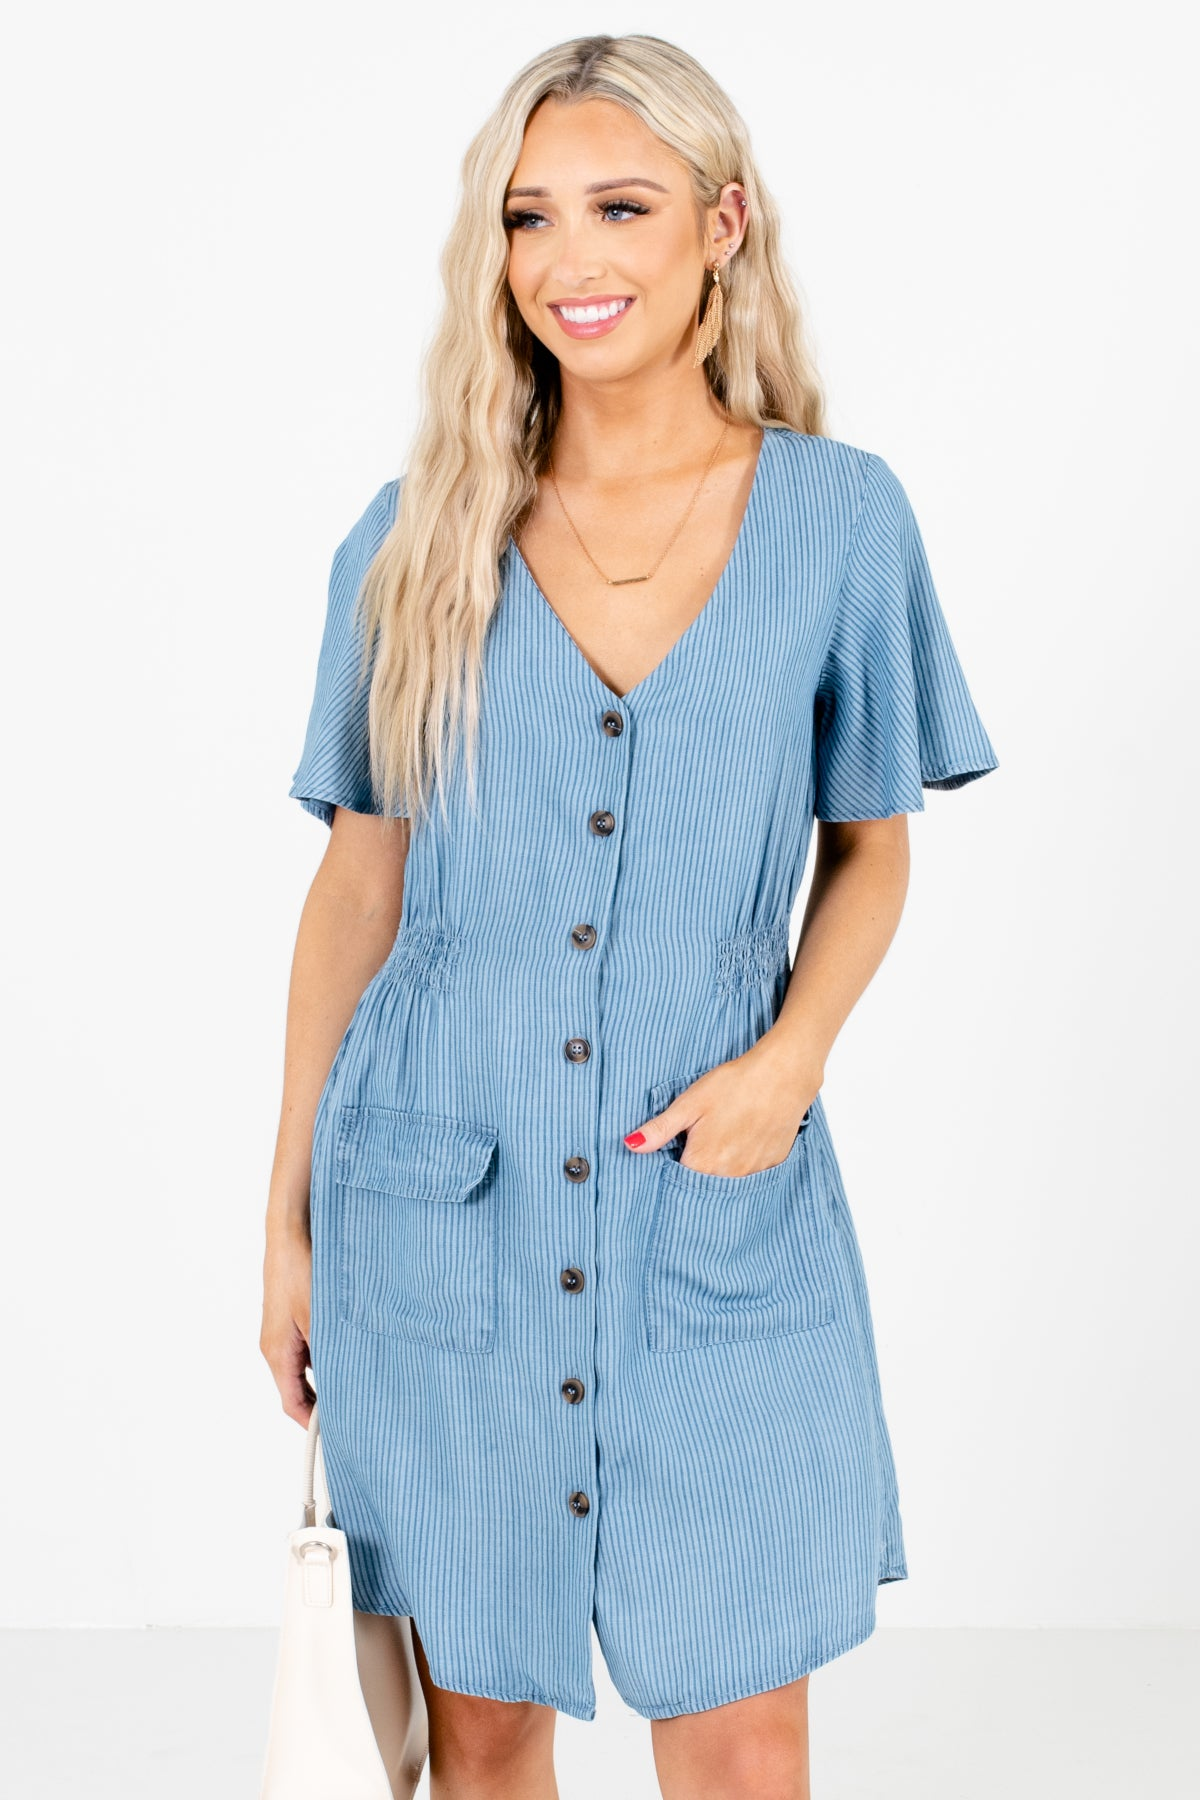 Blue Striped Boutique Mini Dresses for Women